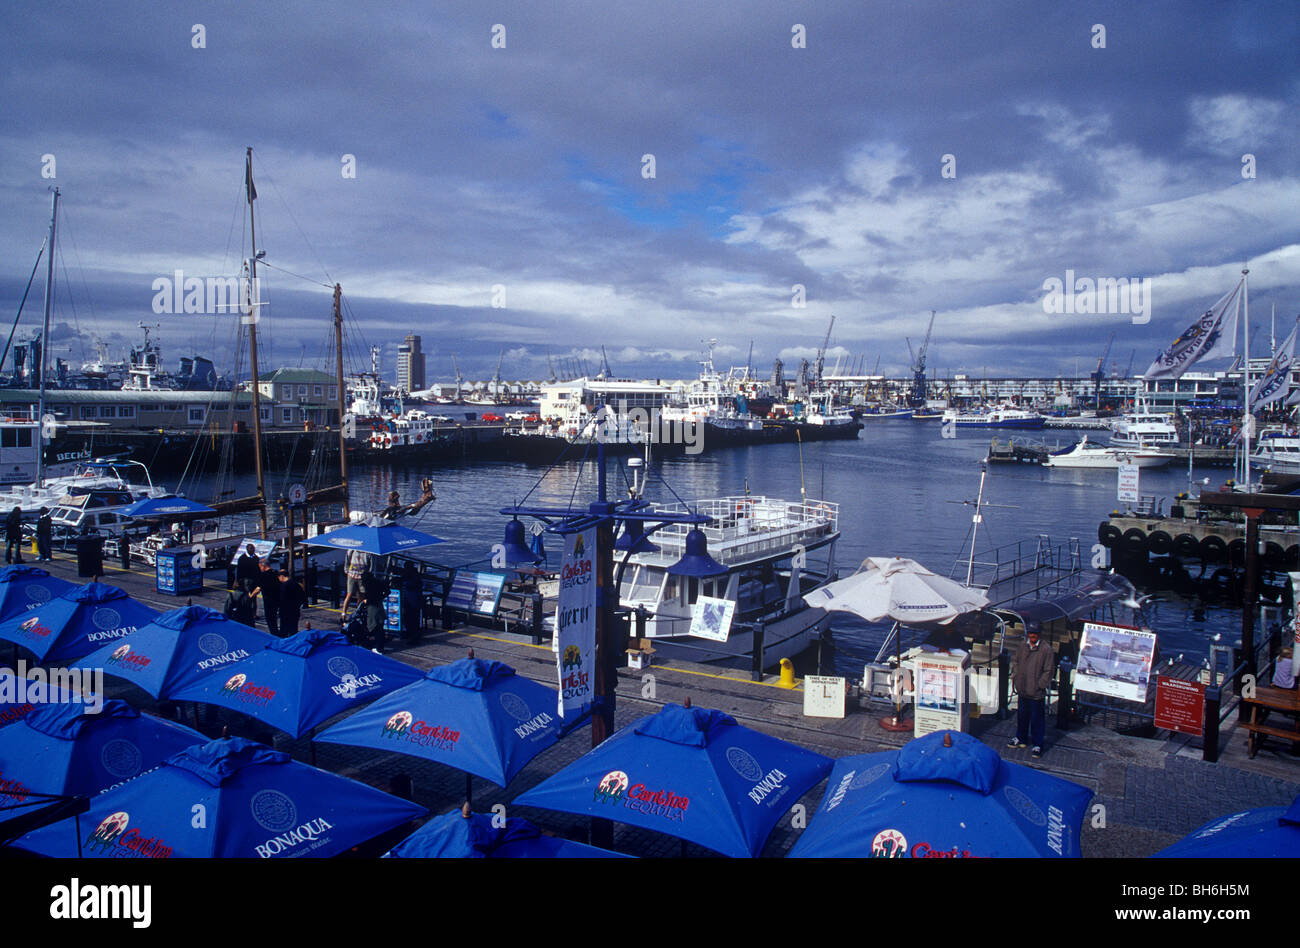 Cape Town marina, South Africa - Stock Image